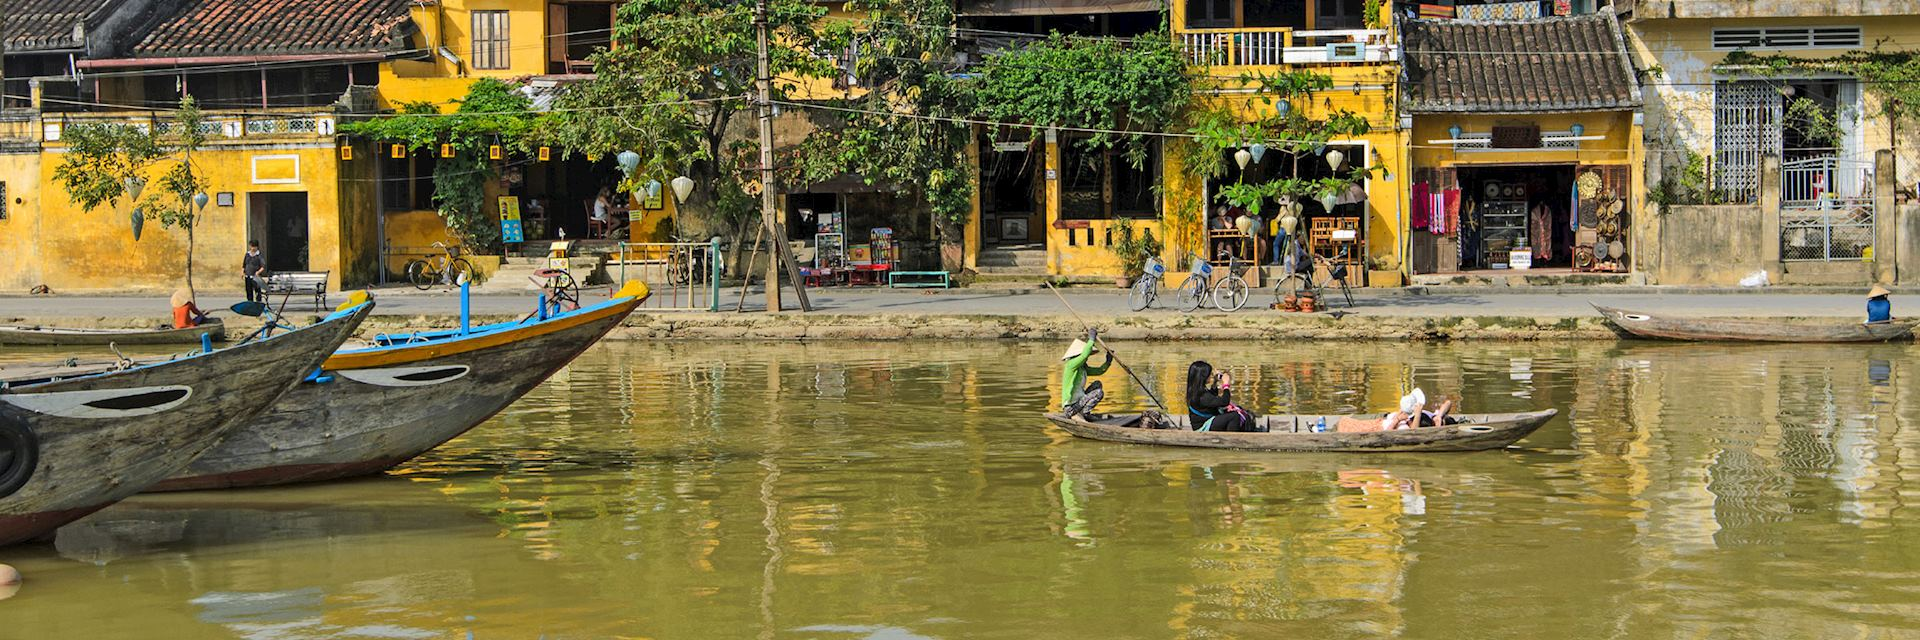 Waterfront, Hoi An